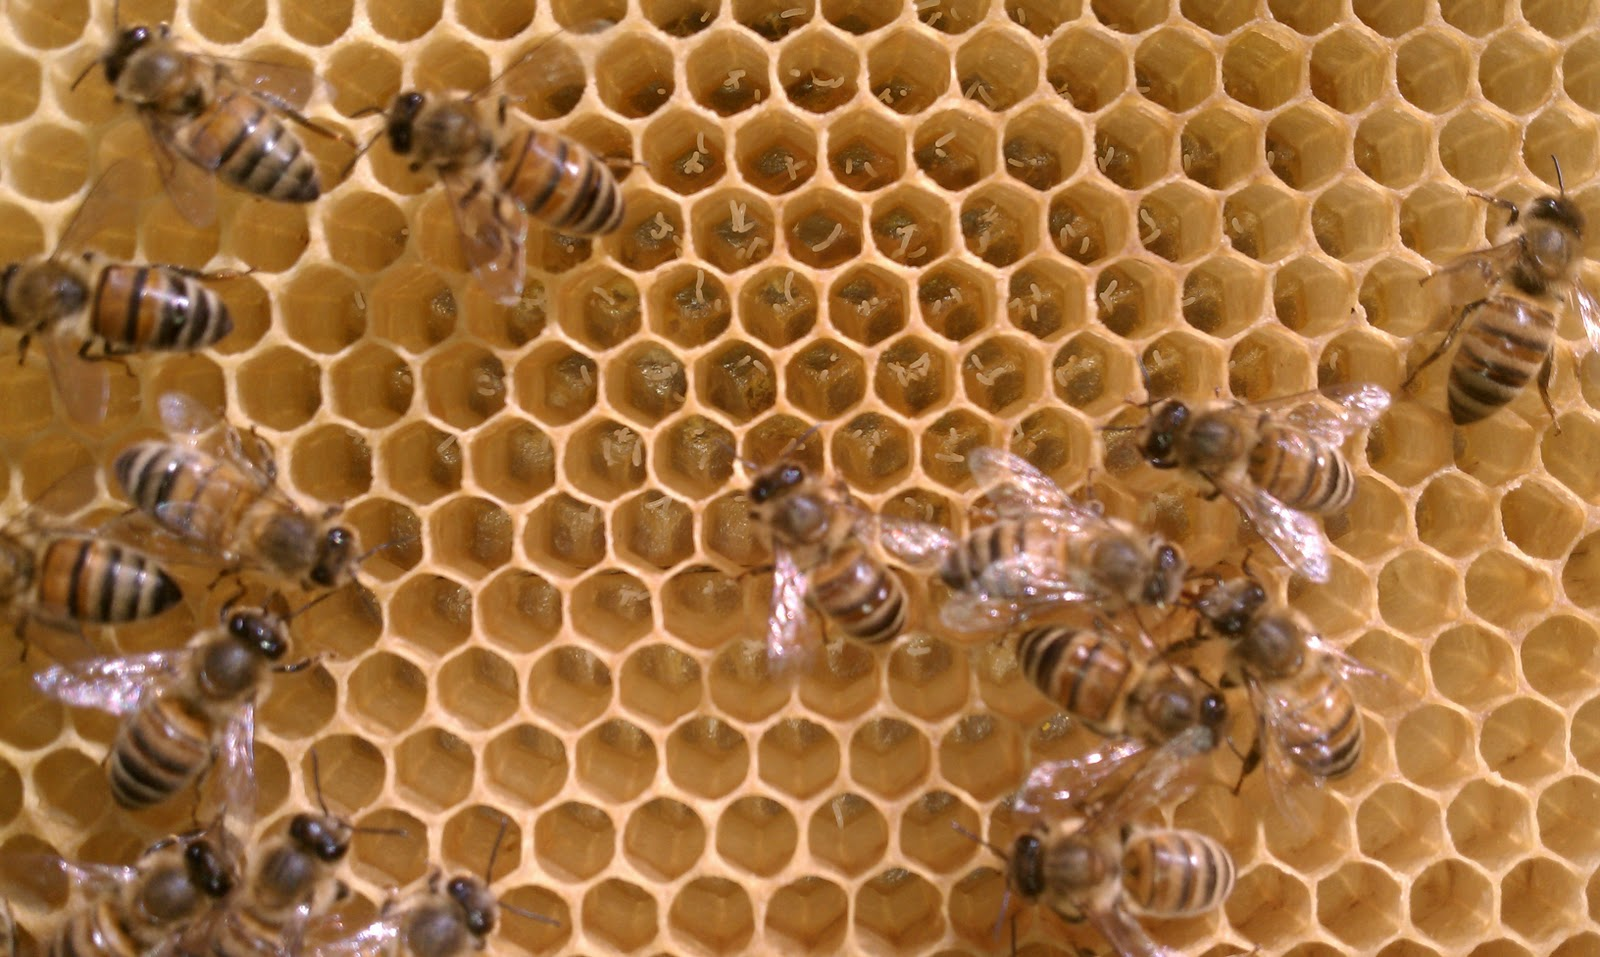 queen bee laying eggs - photo #37